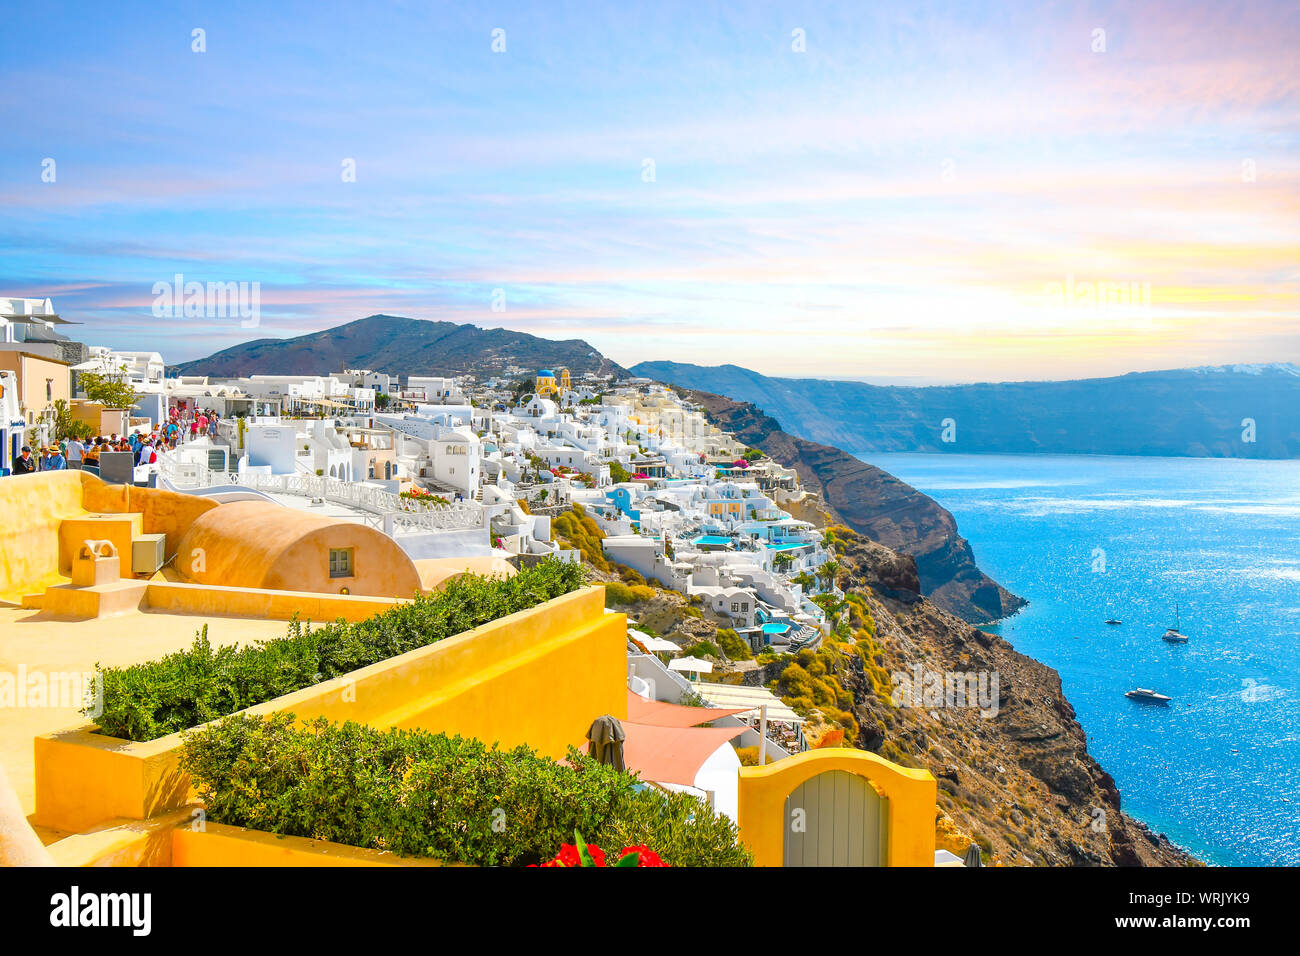 A picturesque scenic view of the Santorini caldera and the Aegean Sea from a resort terrace in the hillside village of Oia, Greece. Stock Photo